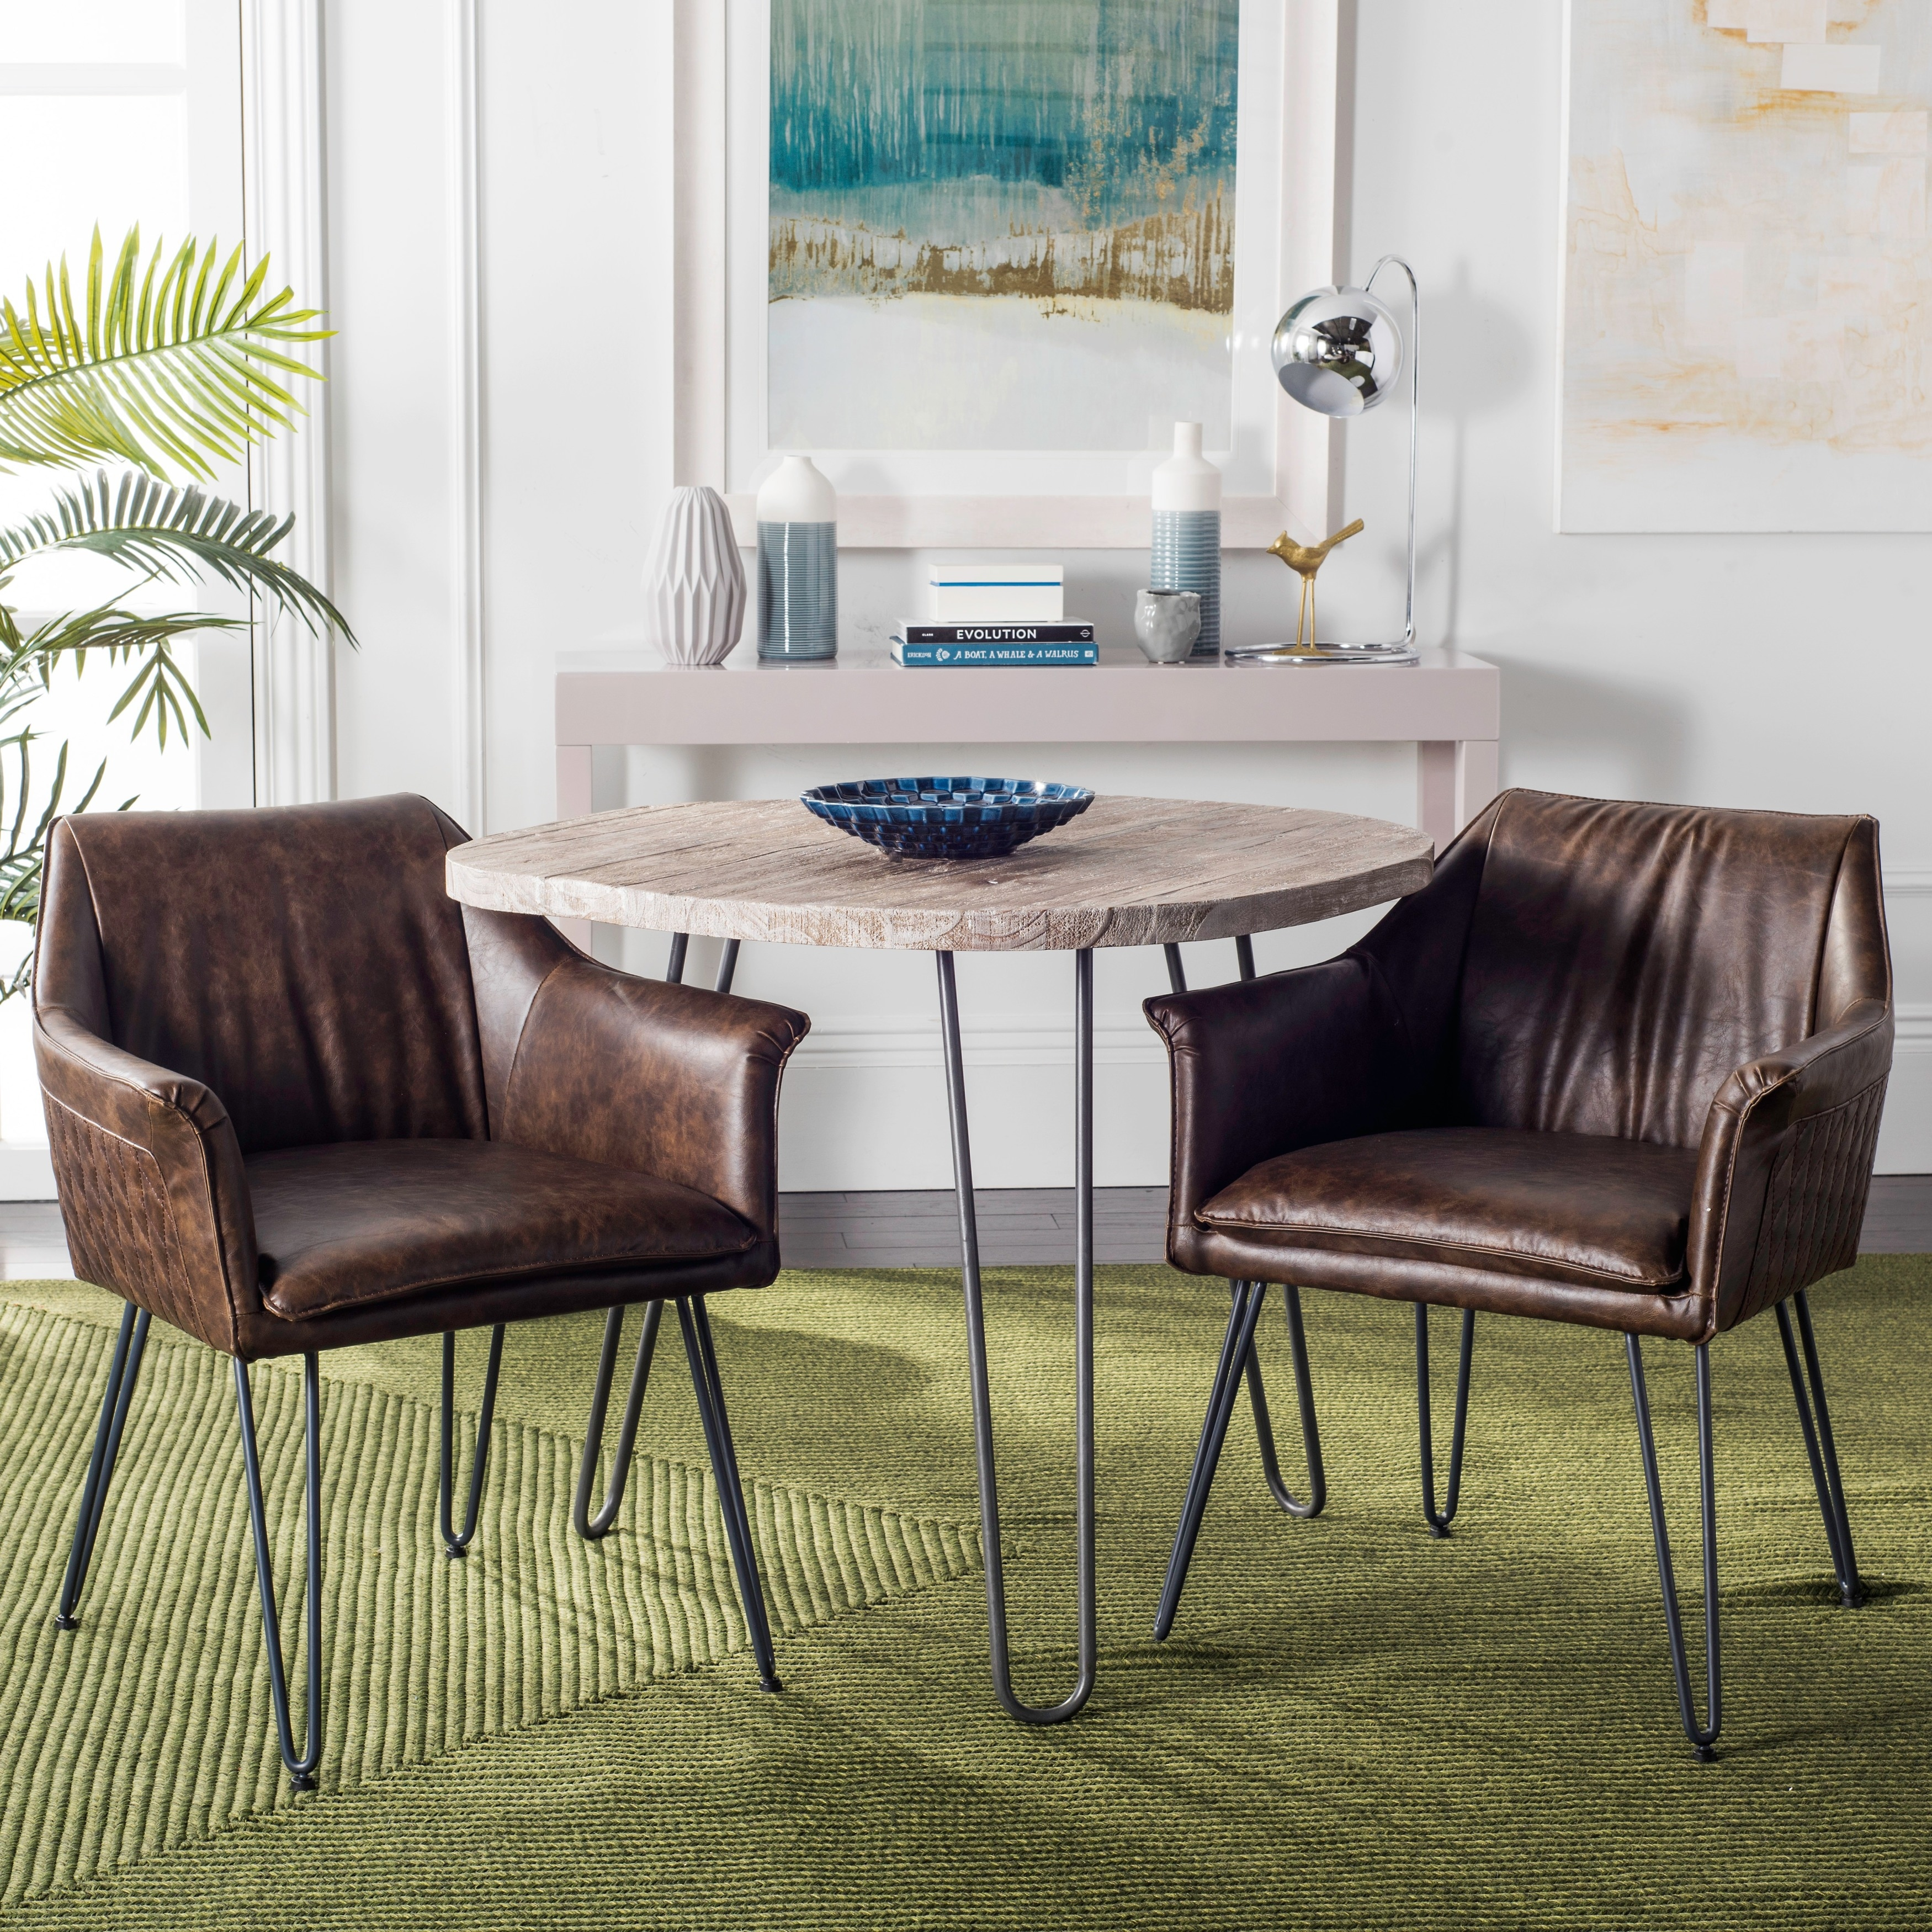 Safavieh Dining 19-inch Esme Brown Leather Dining Chair (Set of 2)